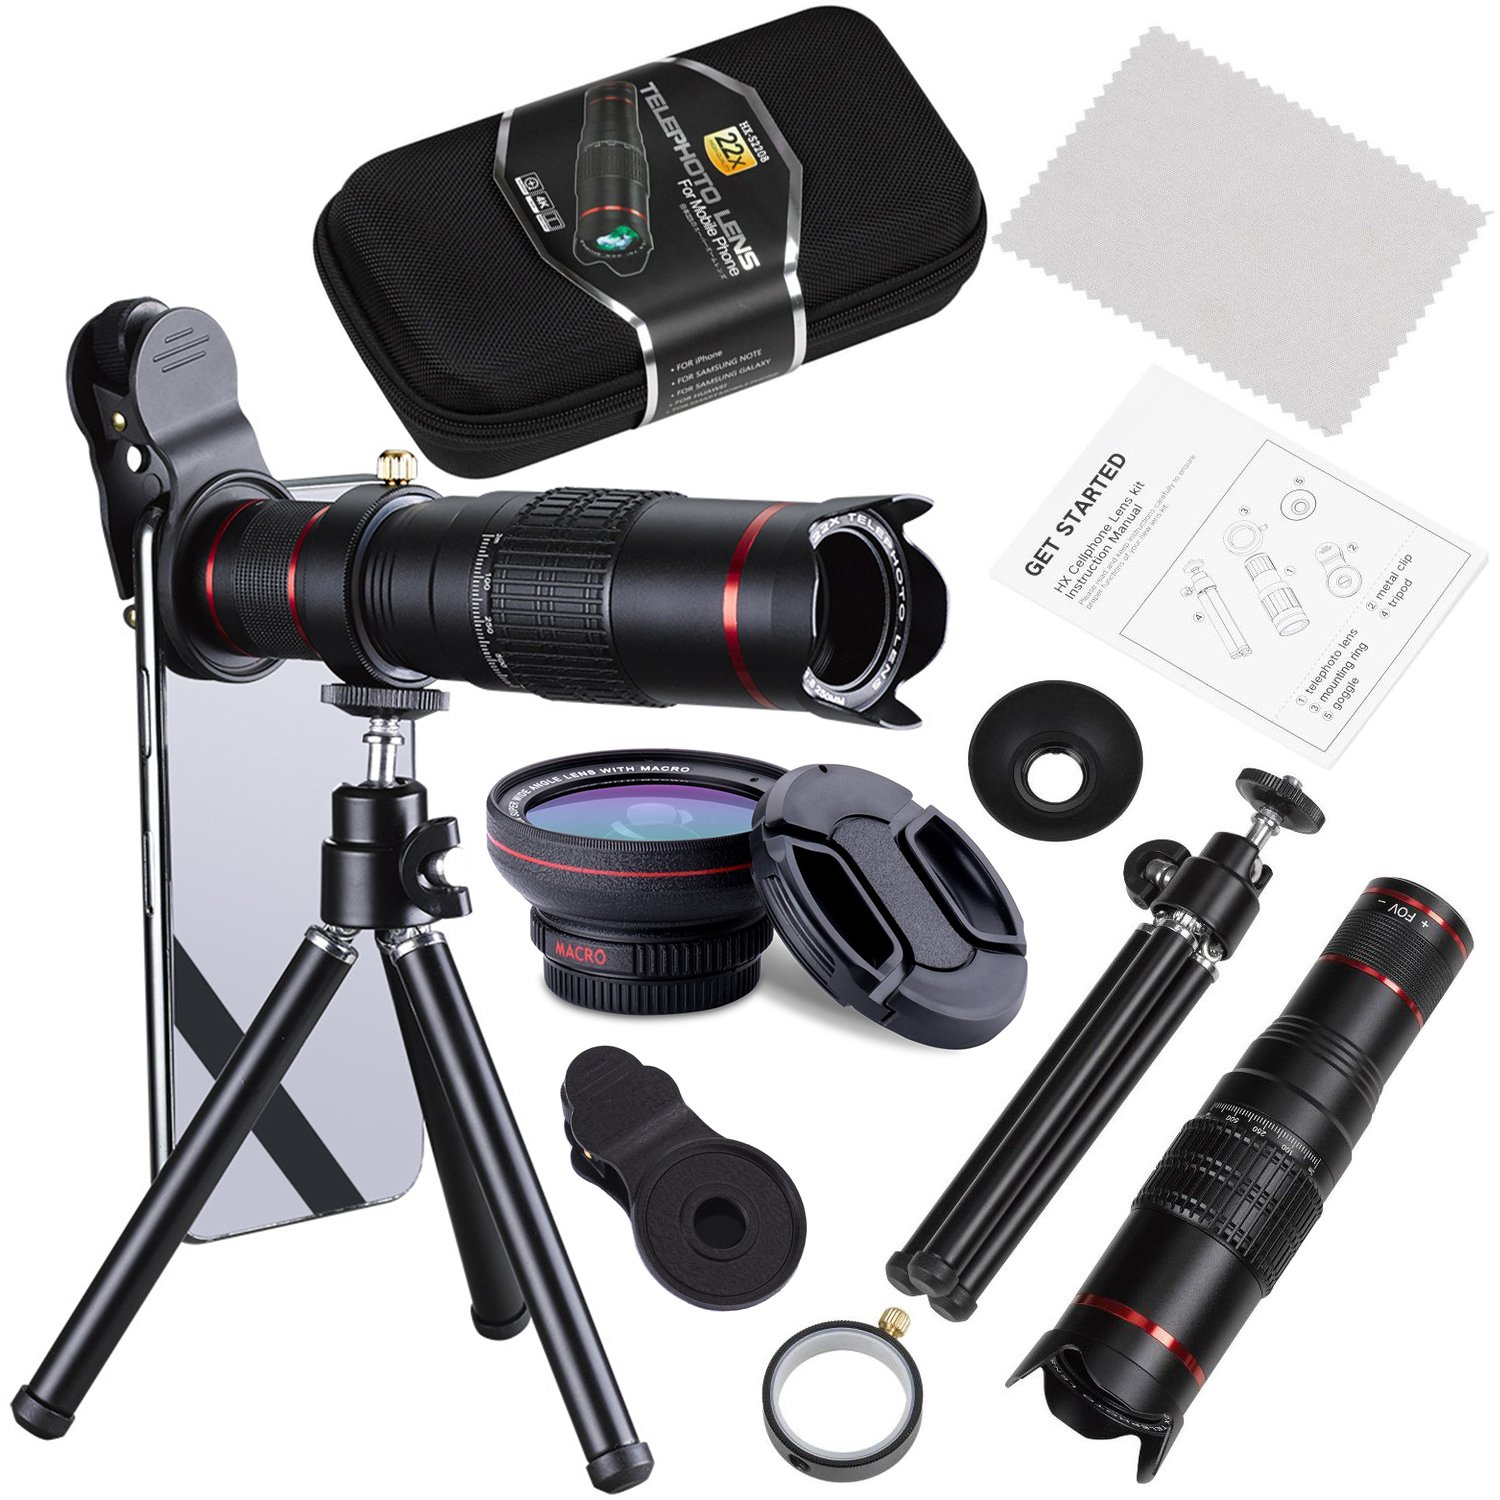 Phone Zoom Lens Kit, Addprime 4 in 1 HD Phone Camera 22X Telephoto Lens with Flexible Tripod, 0.5X Super Wide Angle Lens + 15X Macro Lens + 22X Tele Lens Phone Lens Kit for iPhone/Samsung Cellphone